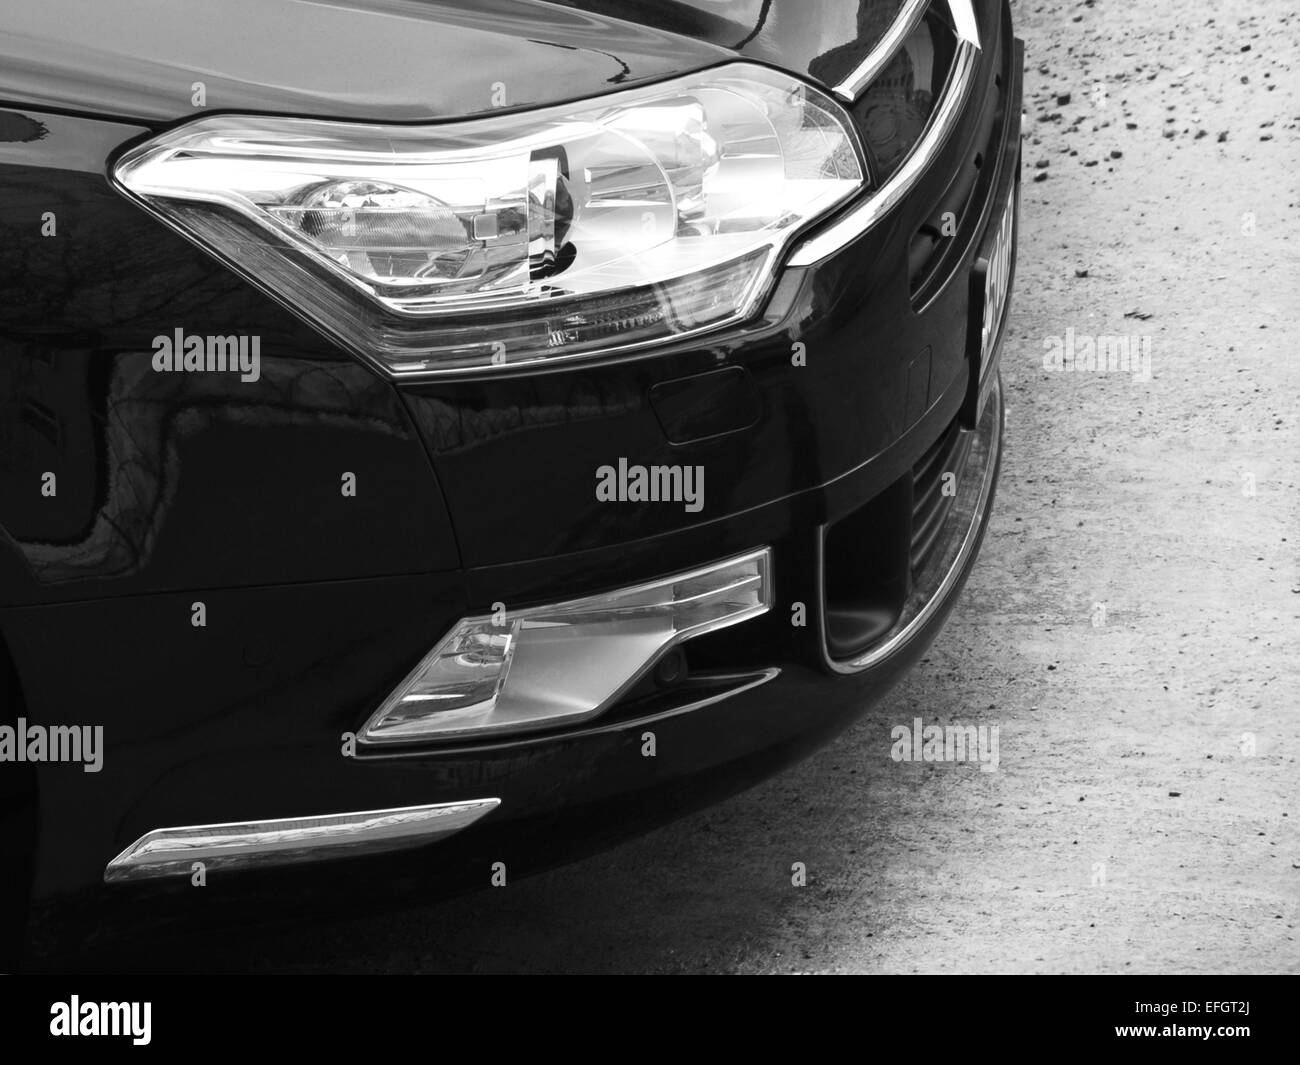 car optics - Stock Image